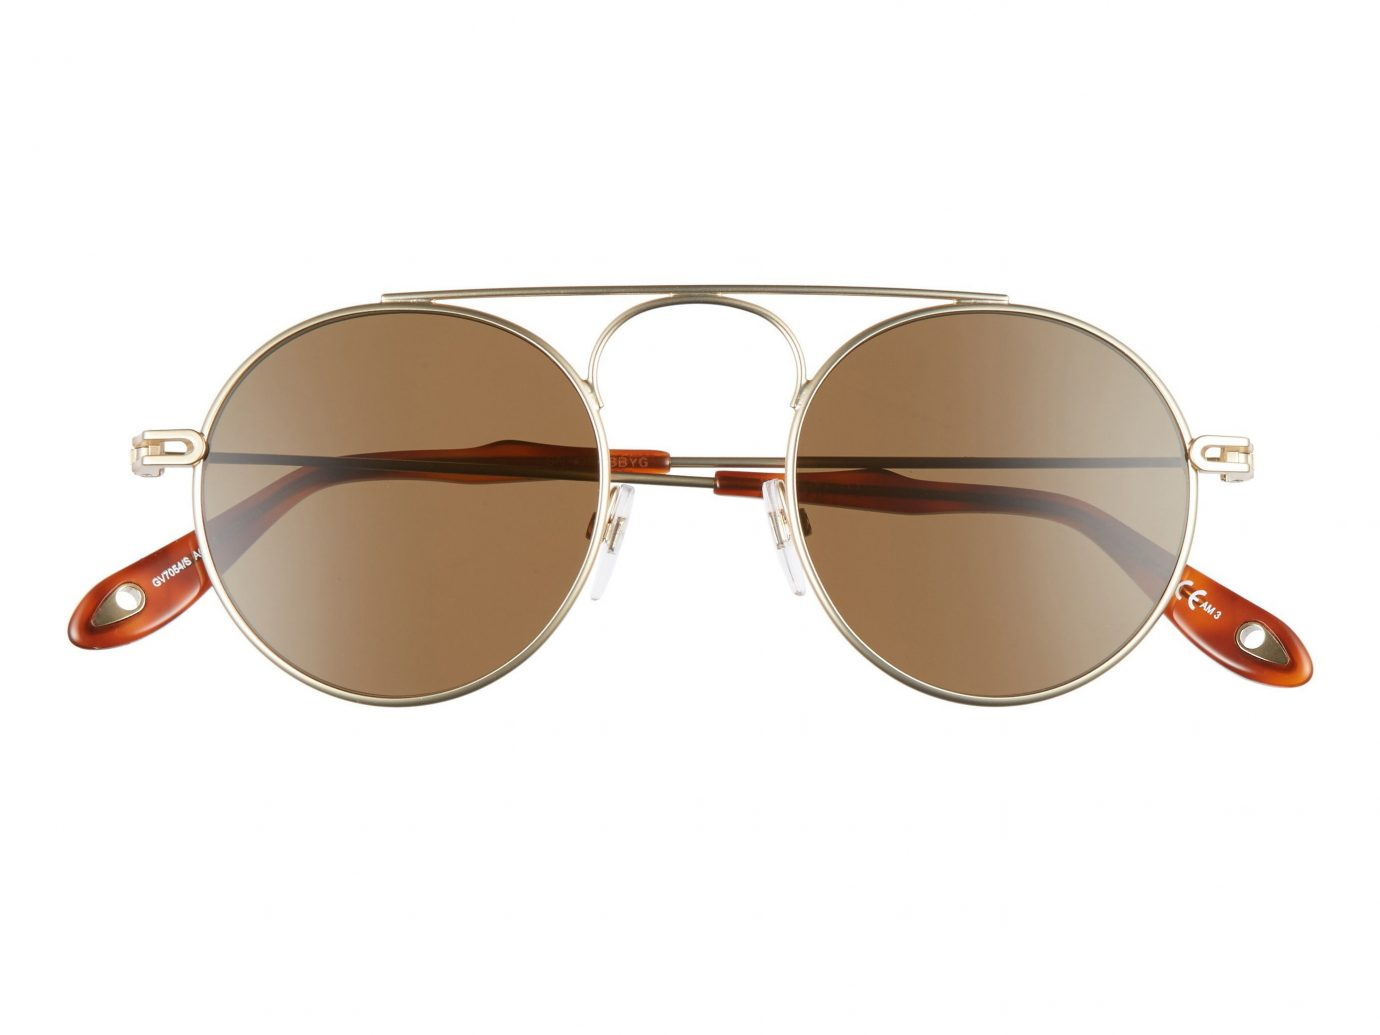 Style + Design eyewear sunglasses spectacles vision care glasses Music brown product design product accessory goggles